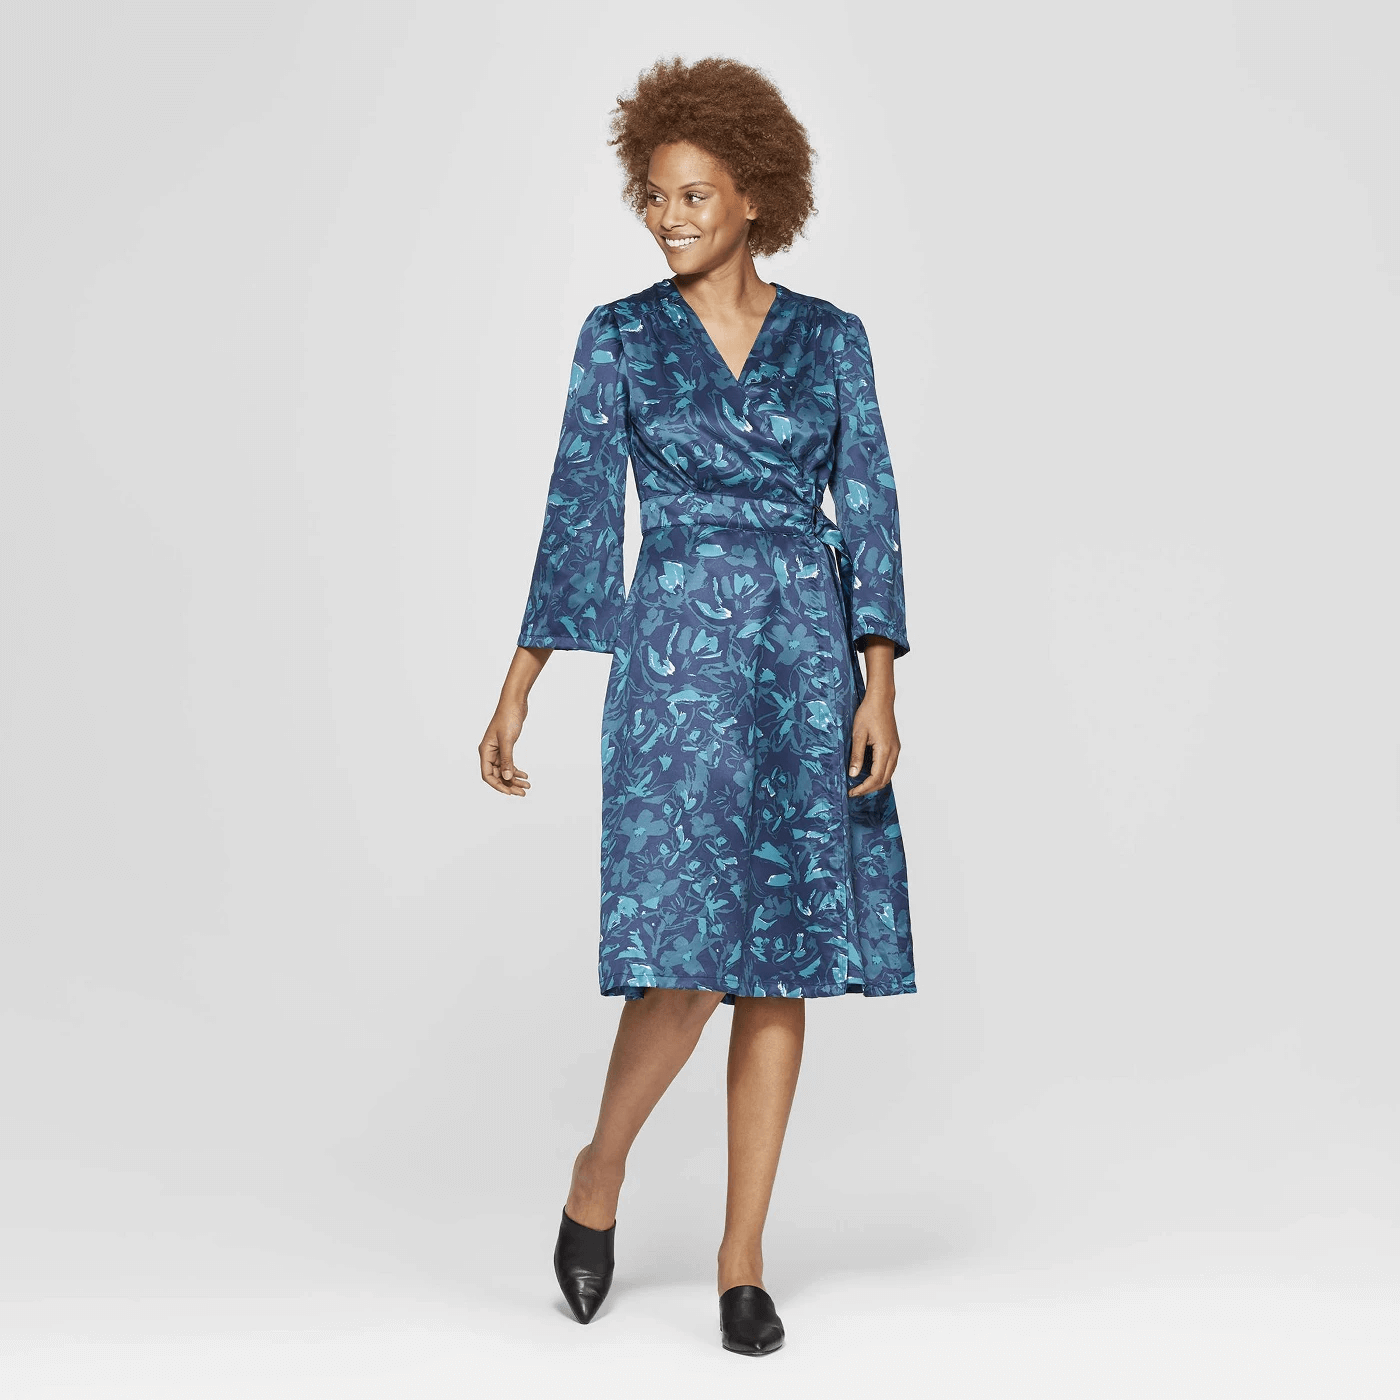 d88c6d923 18 Target Dresses Perfect For Warm Nights & Sunny Days | I AM & CO®